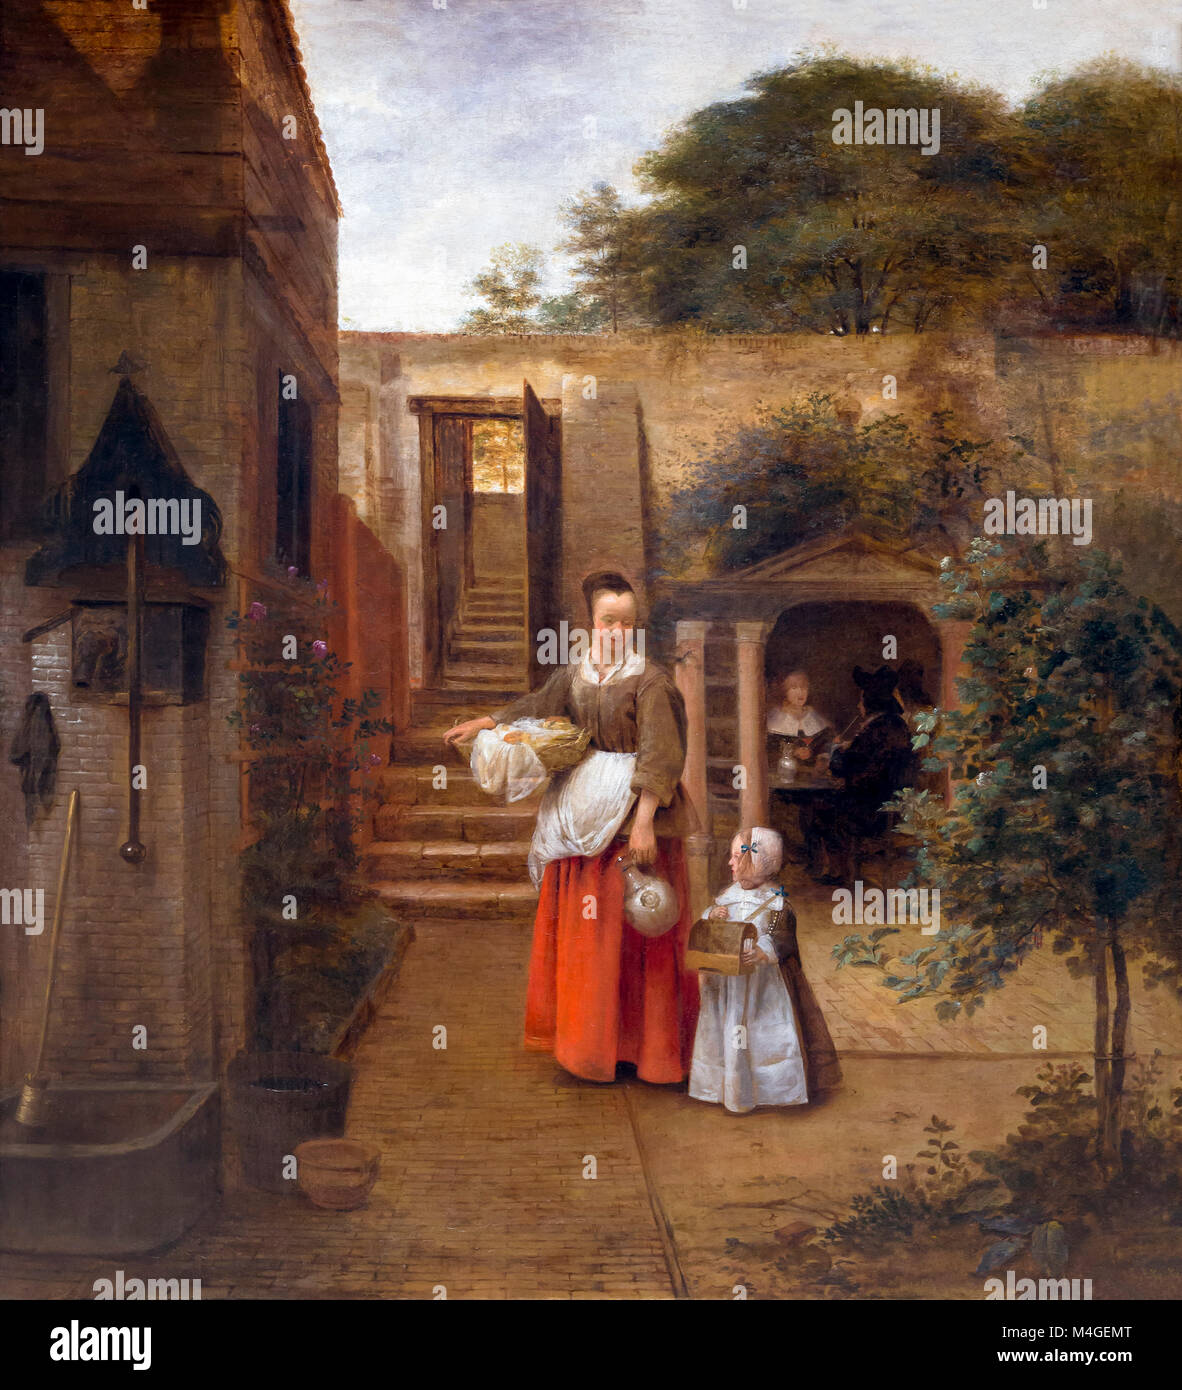 Woman and Child in a Courtyard, Pieter de Hooch, circa 1660, National Gallery of Art, Washington DC, USA, North - Stock Image